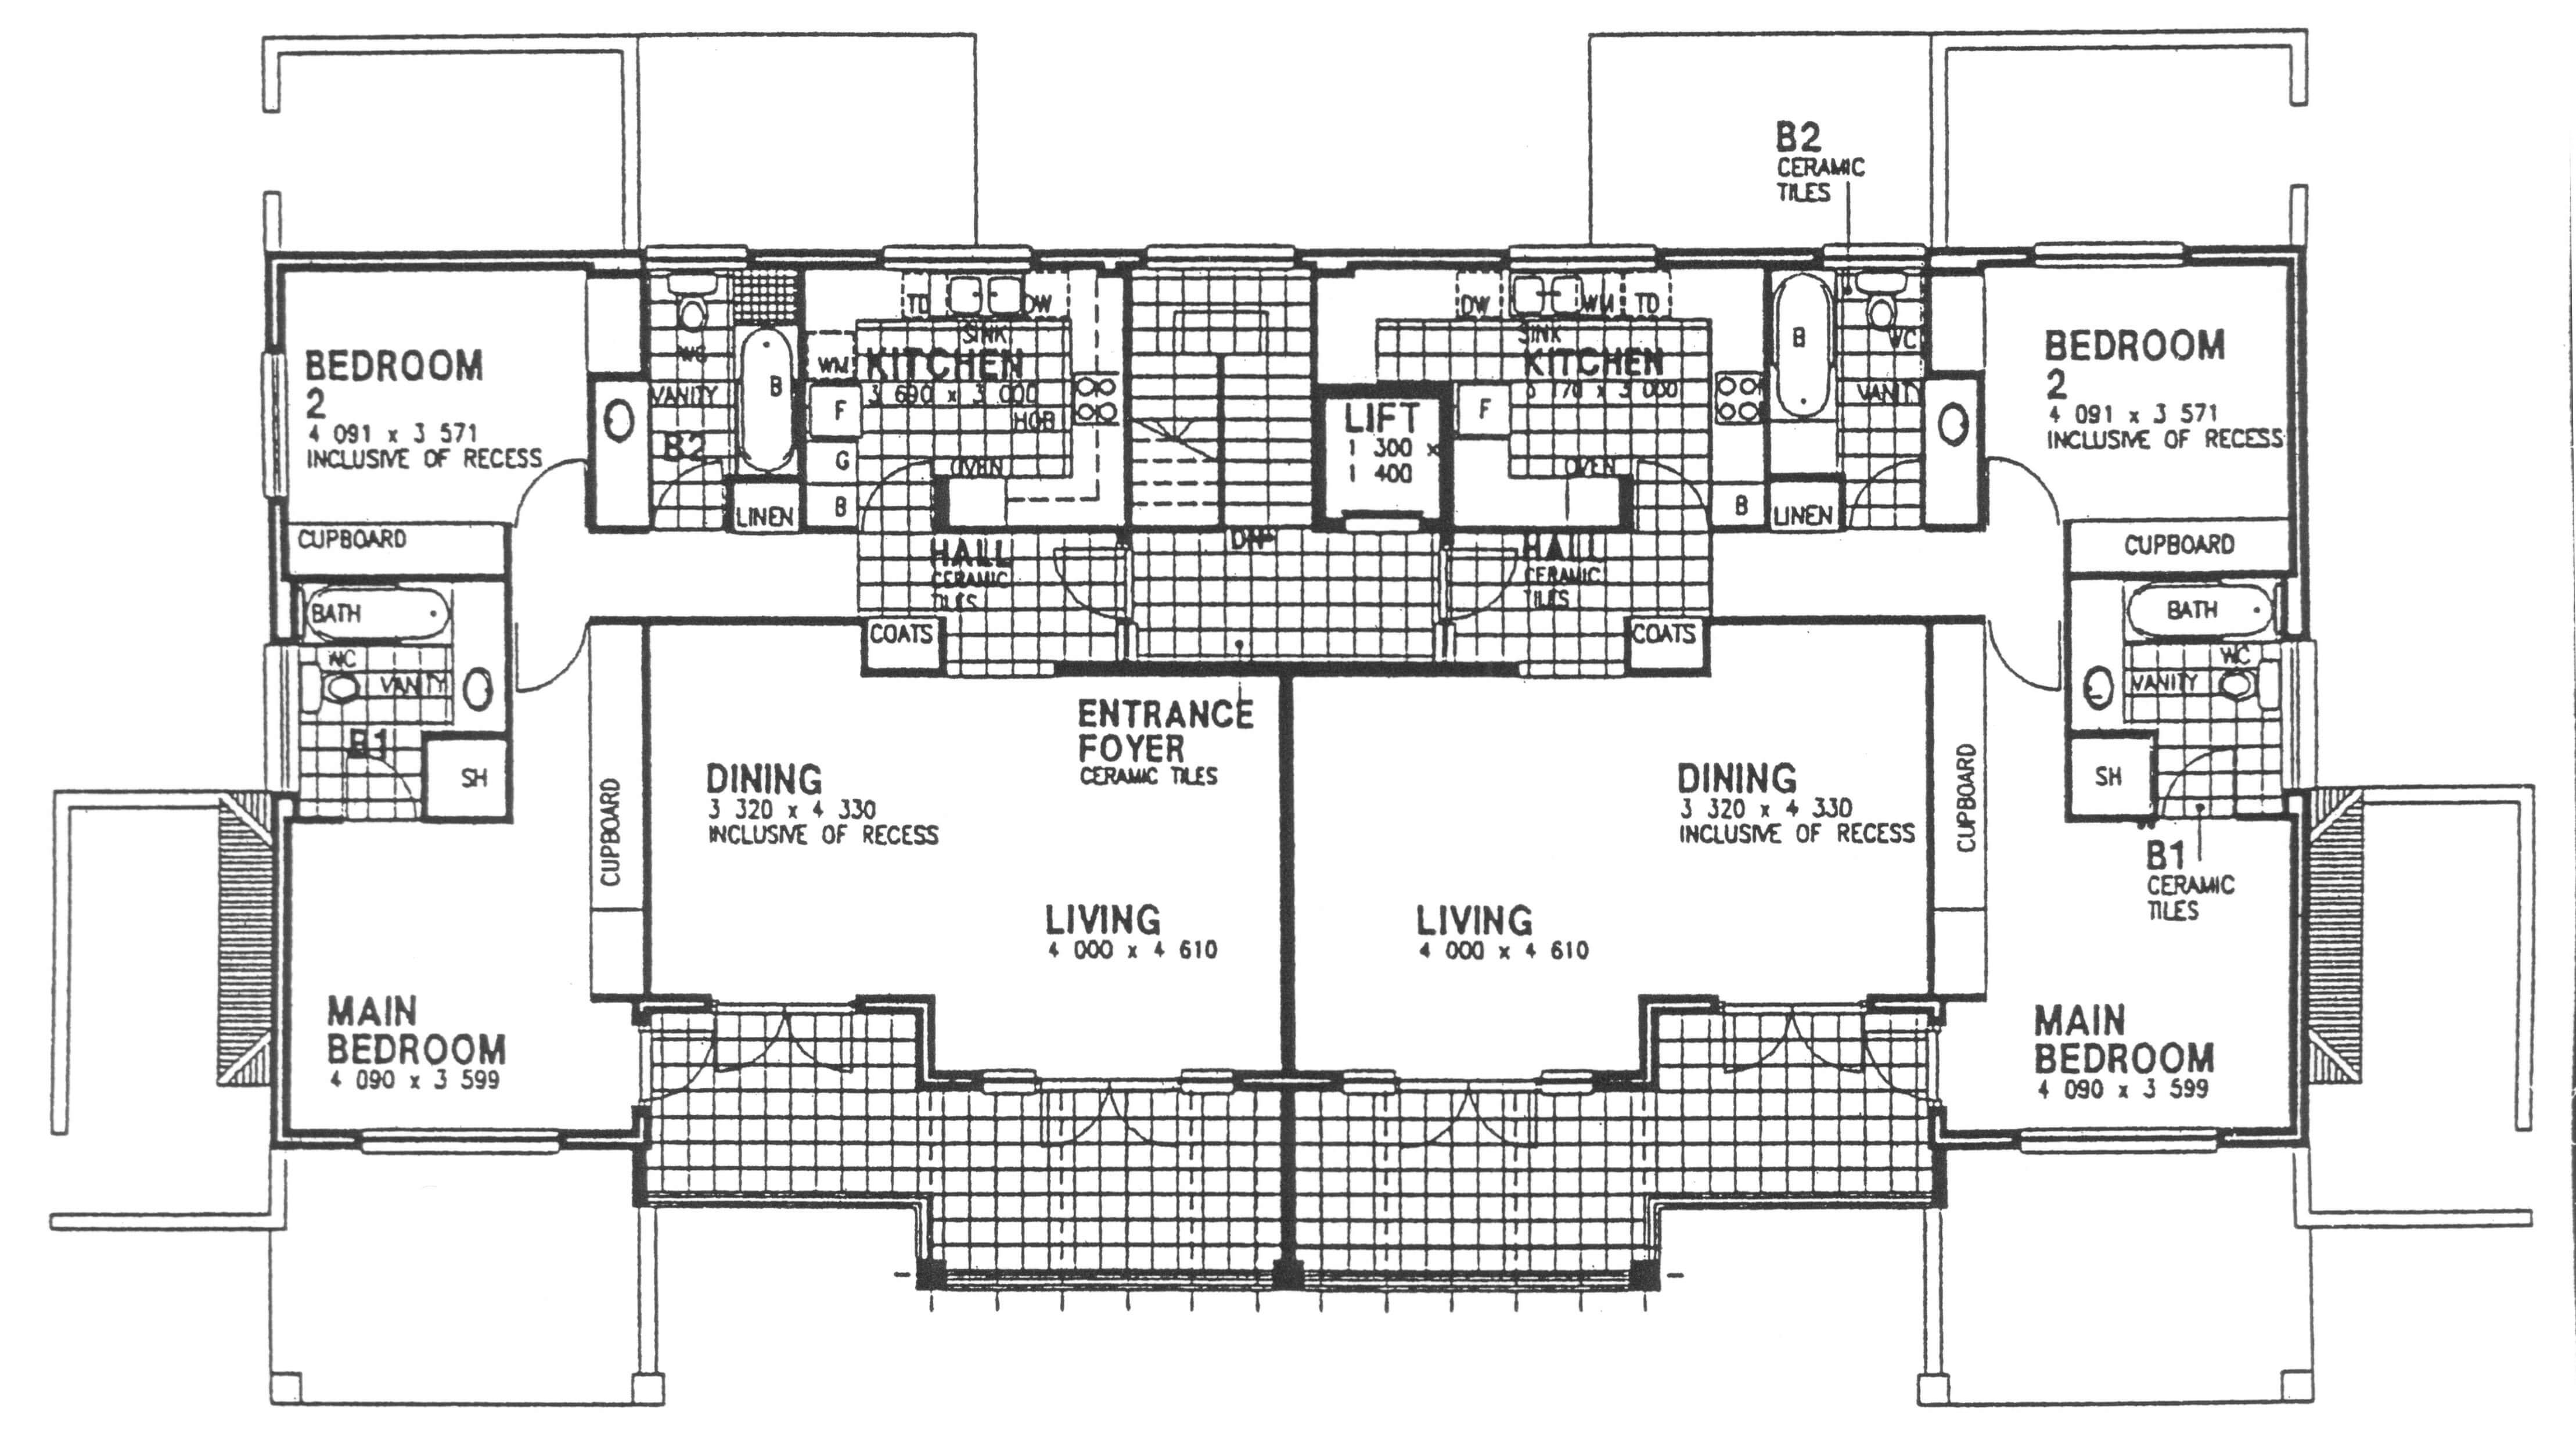 Floor Plan - The_mews Floor Plan